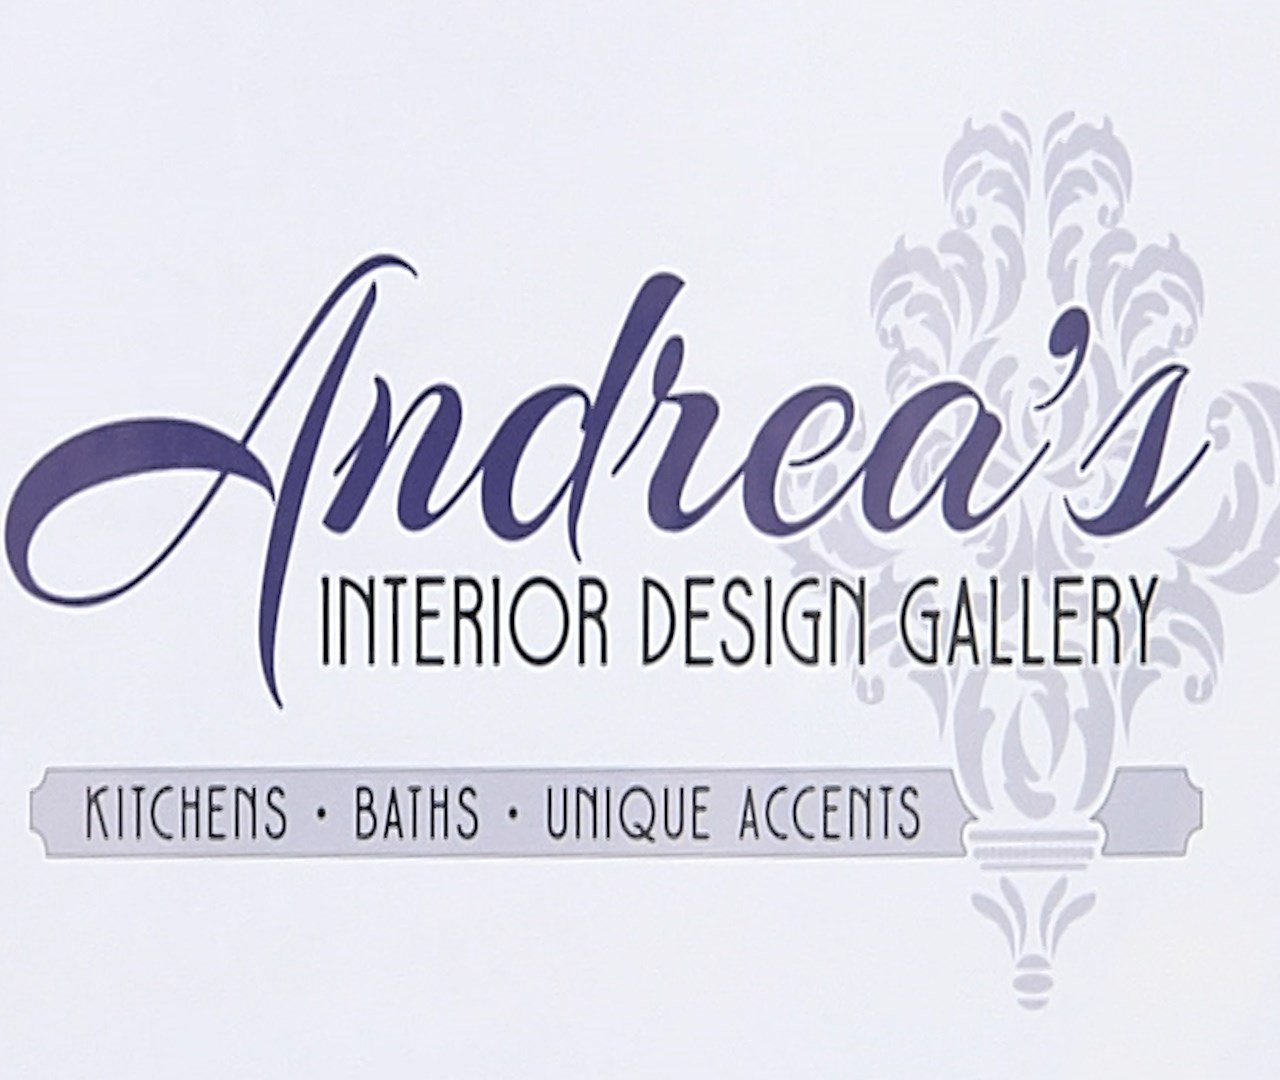 Andrea 39 s interior design gallery giving you the business for Andrea s interior design gallery